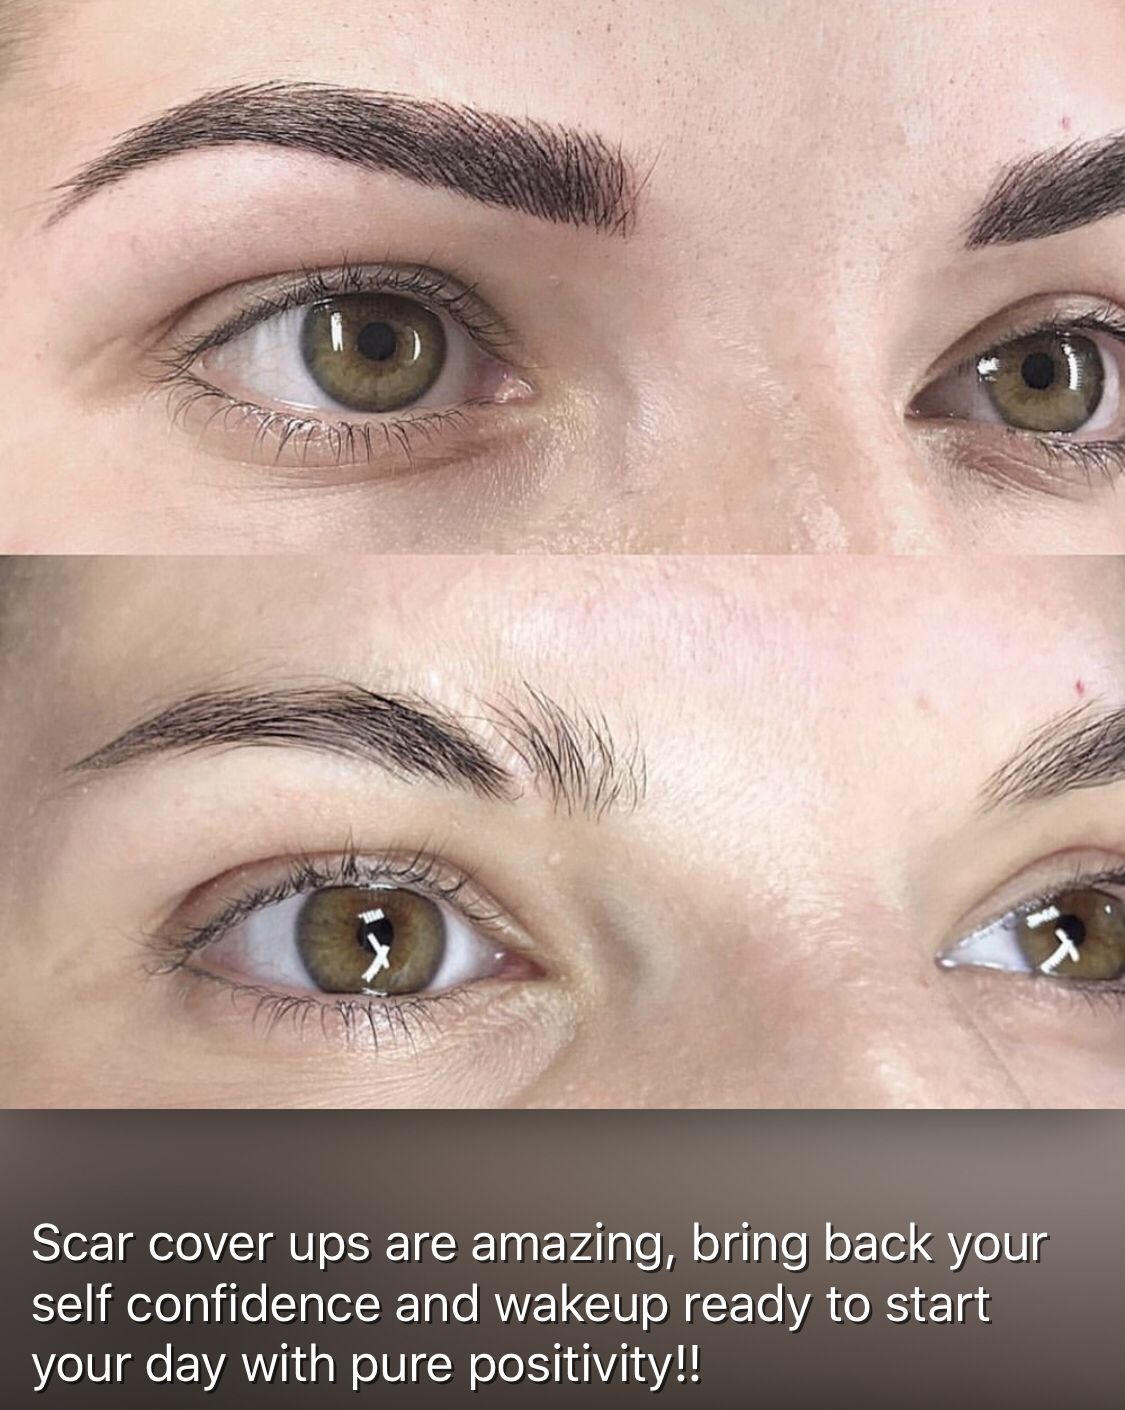 Scar coverup Microblading eyebrows